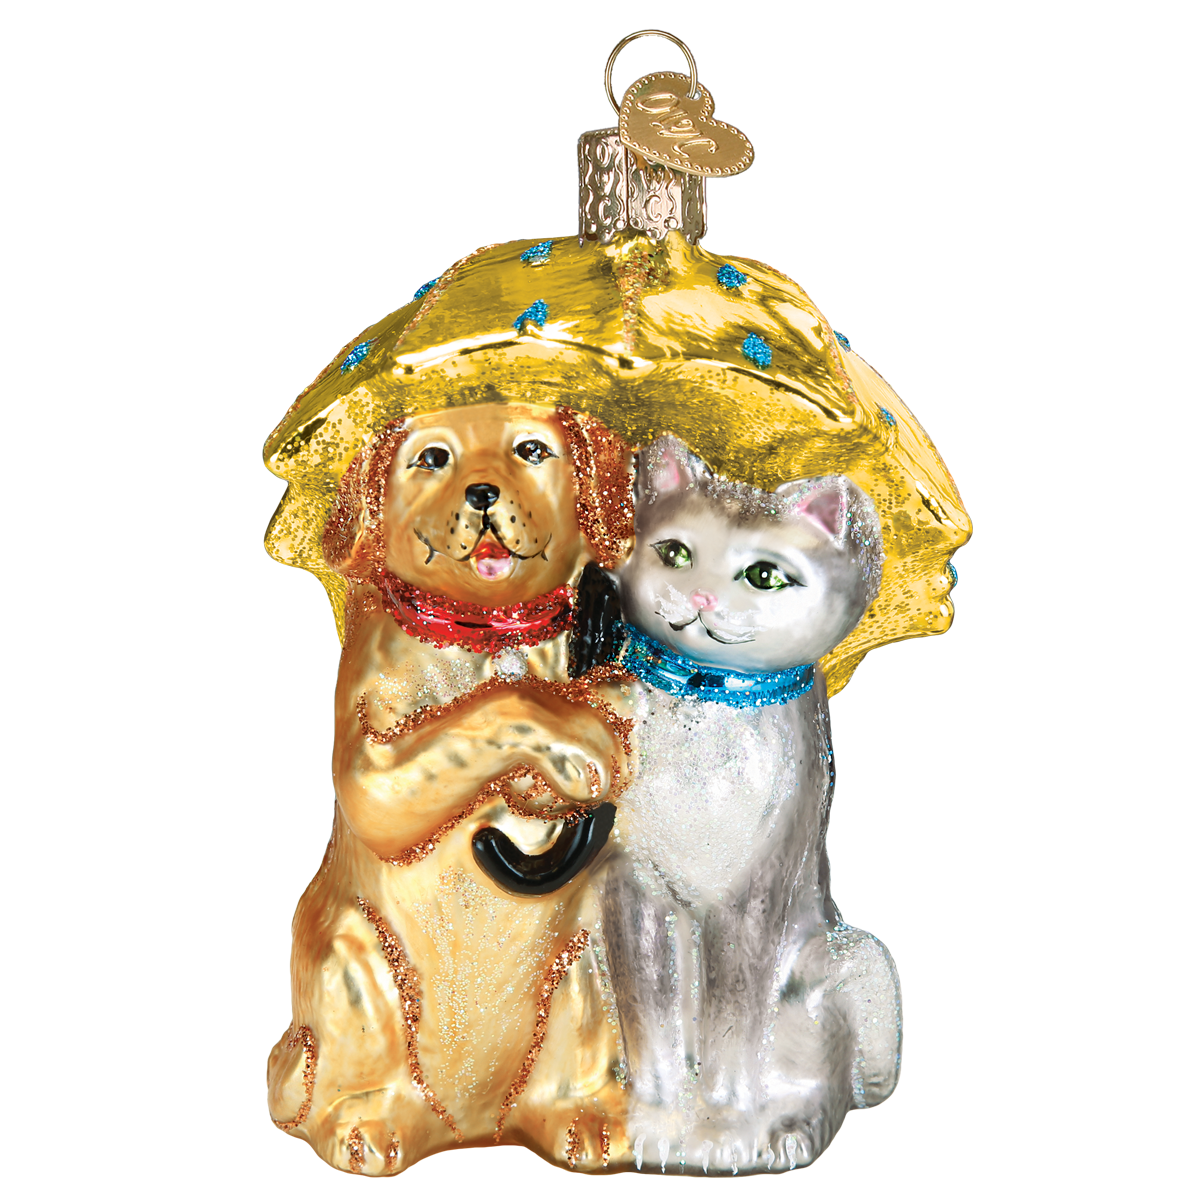 OLD WORLD CHRISTMAS RAINING CATS AND DOGS ORNAMENT